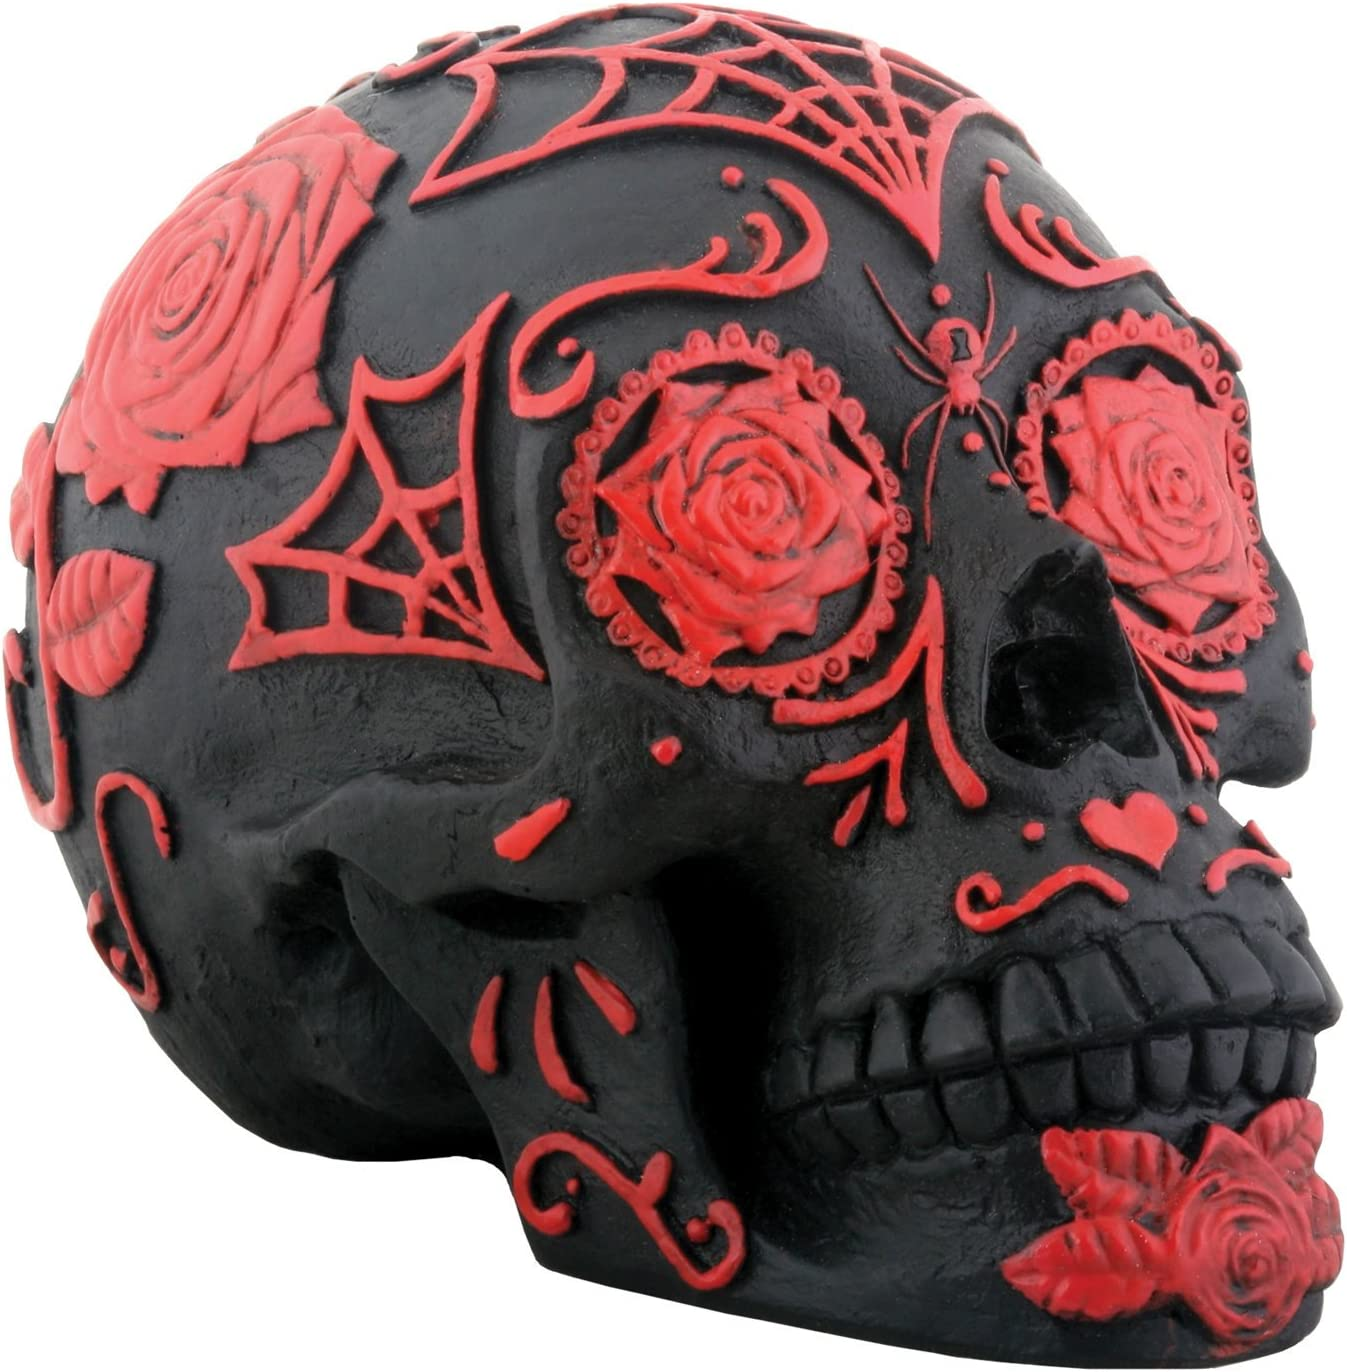 SUMMIT COLLECTION Day of The Dead Black and Red Tattoo Sugar Skull Collectible